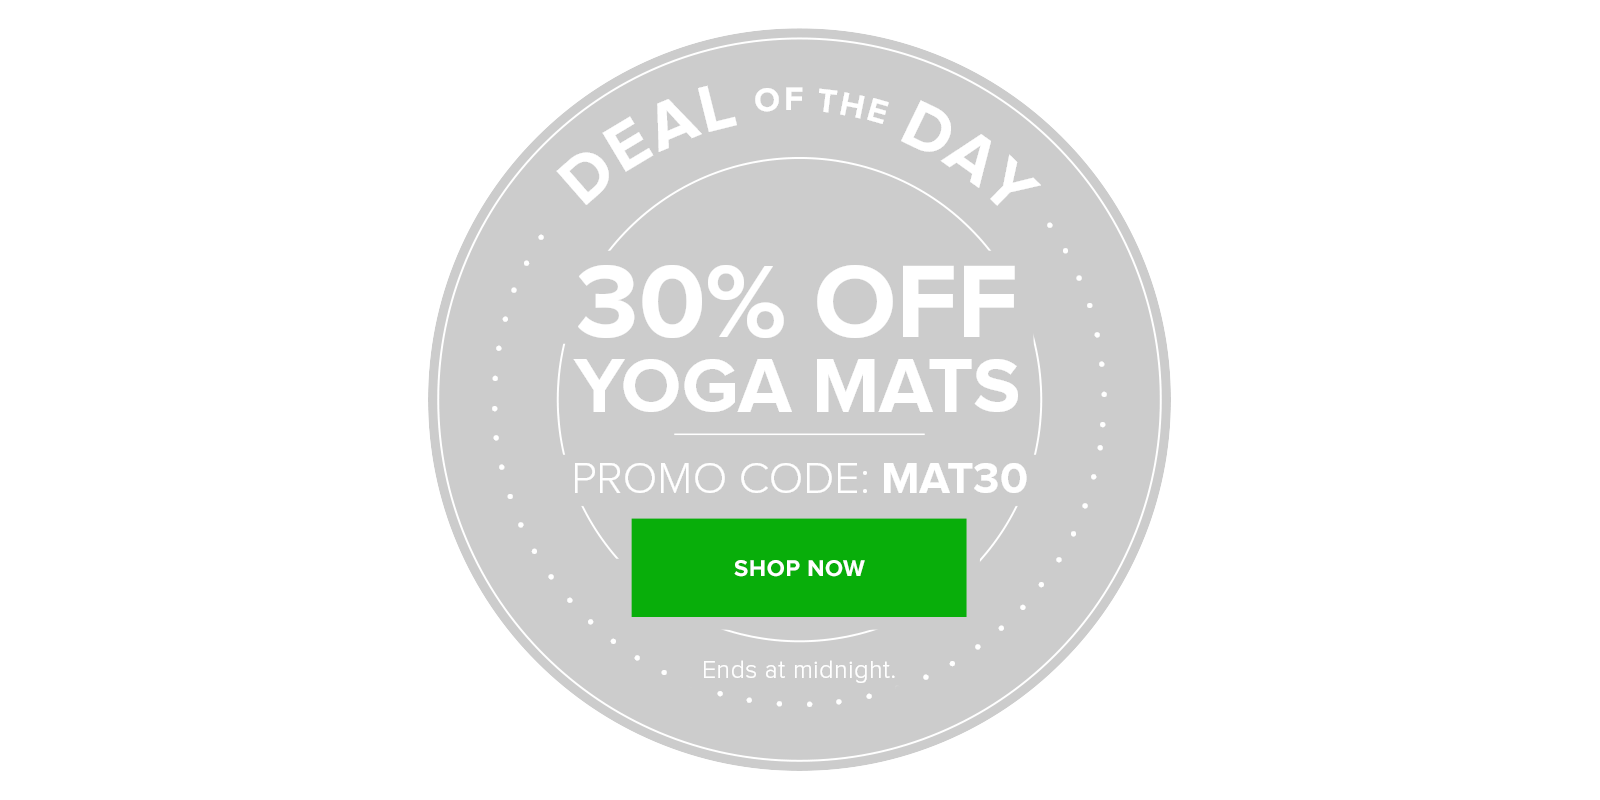 Deal of the Day: 30% off Yoga Mats with code MAT30